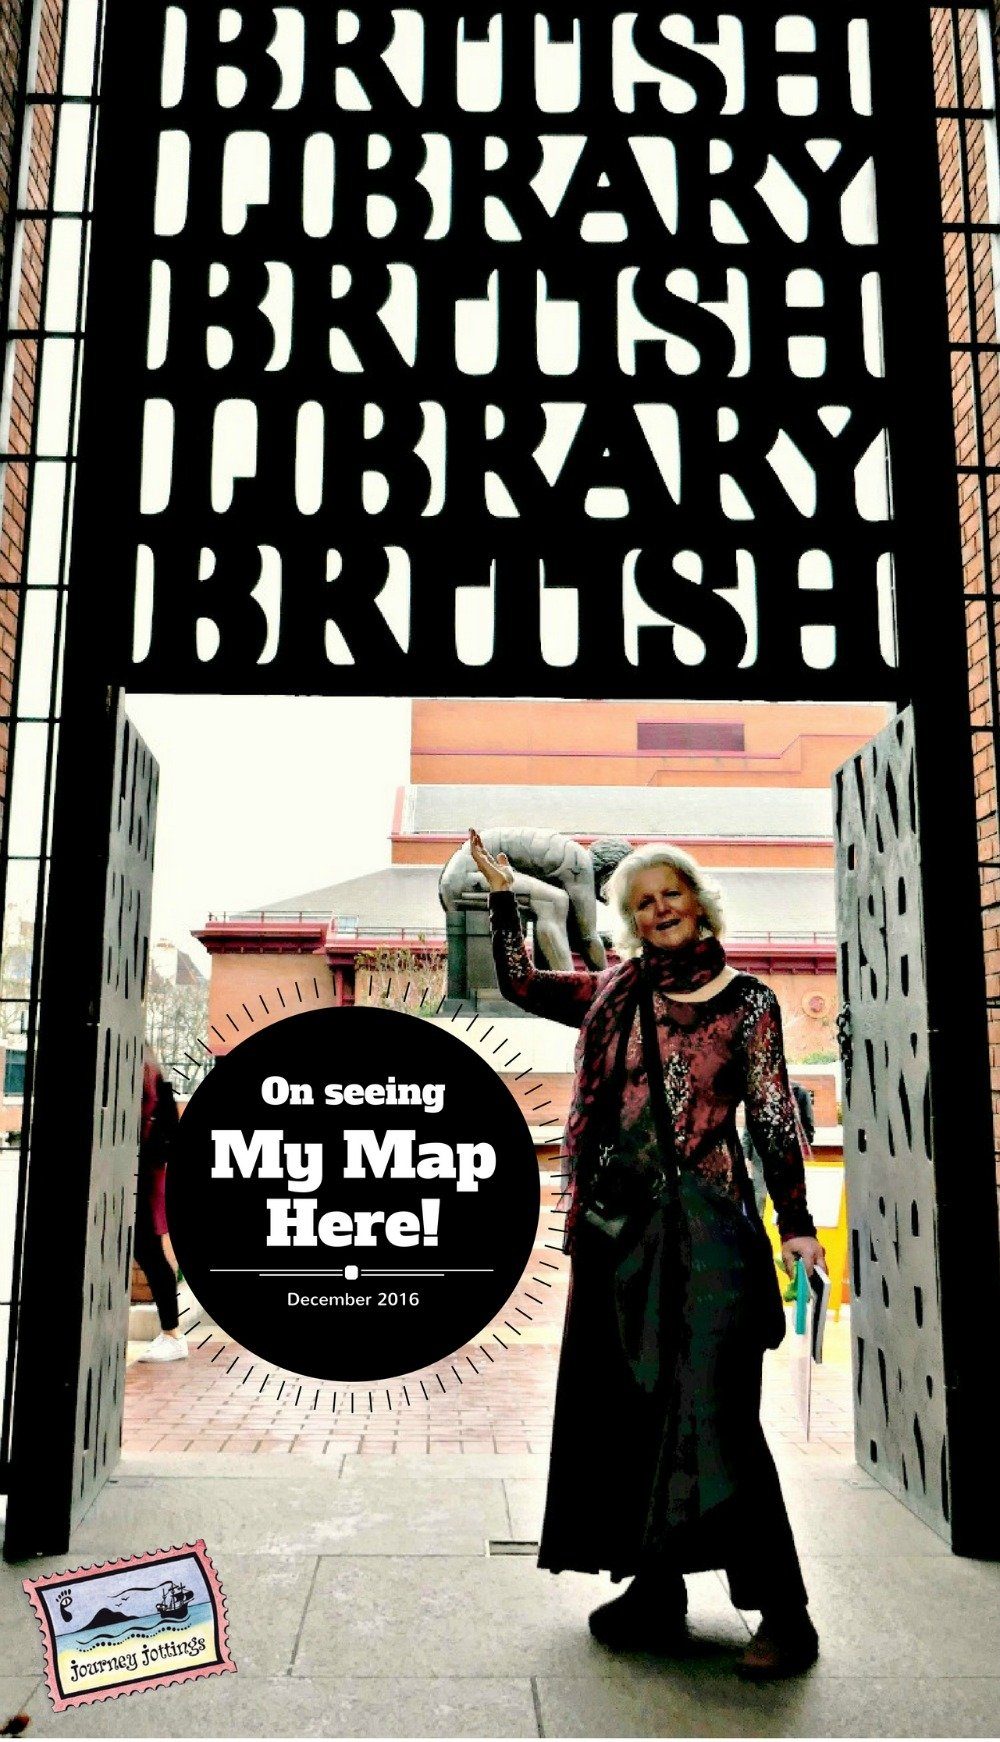 Standing outside the British Library having just seen my map there on exhibition